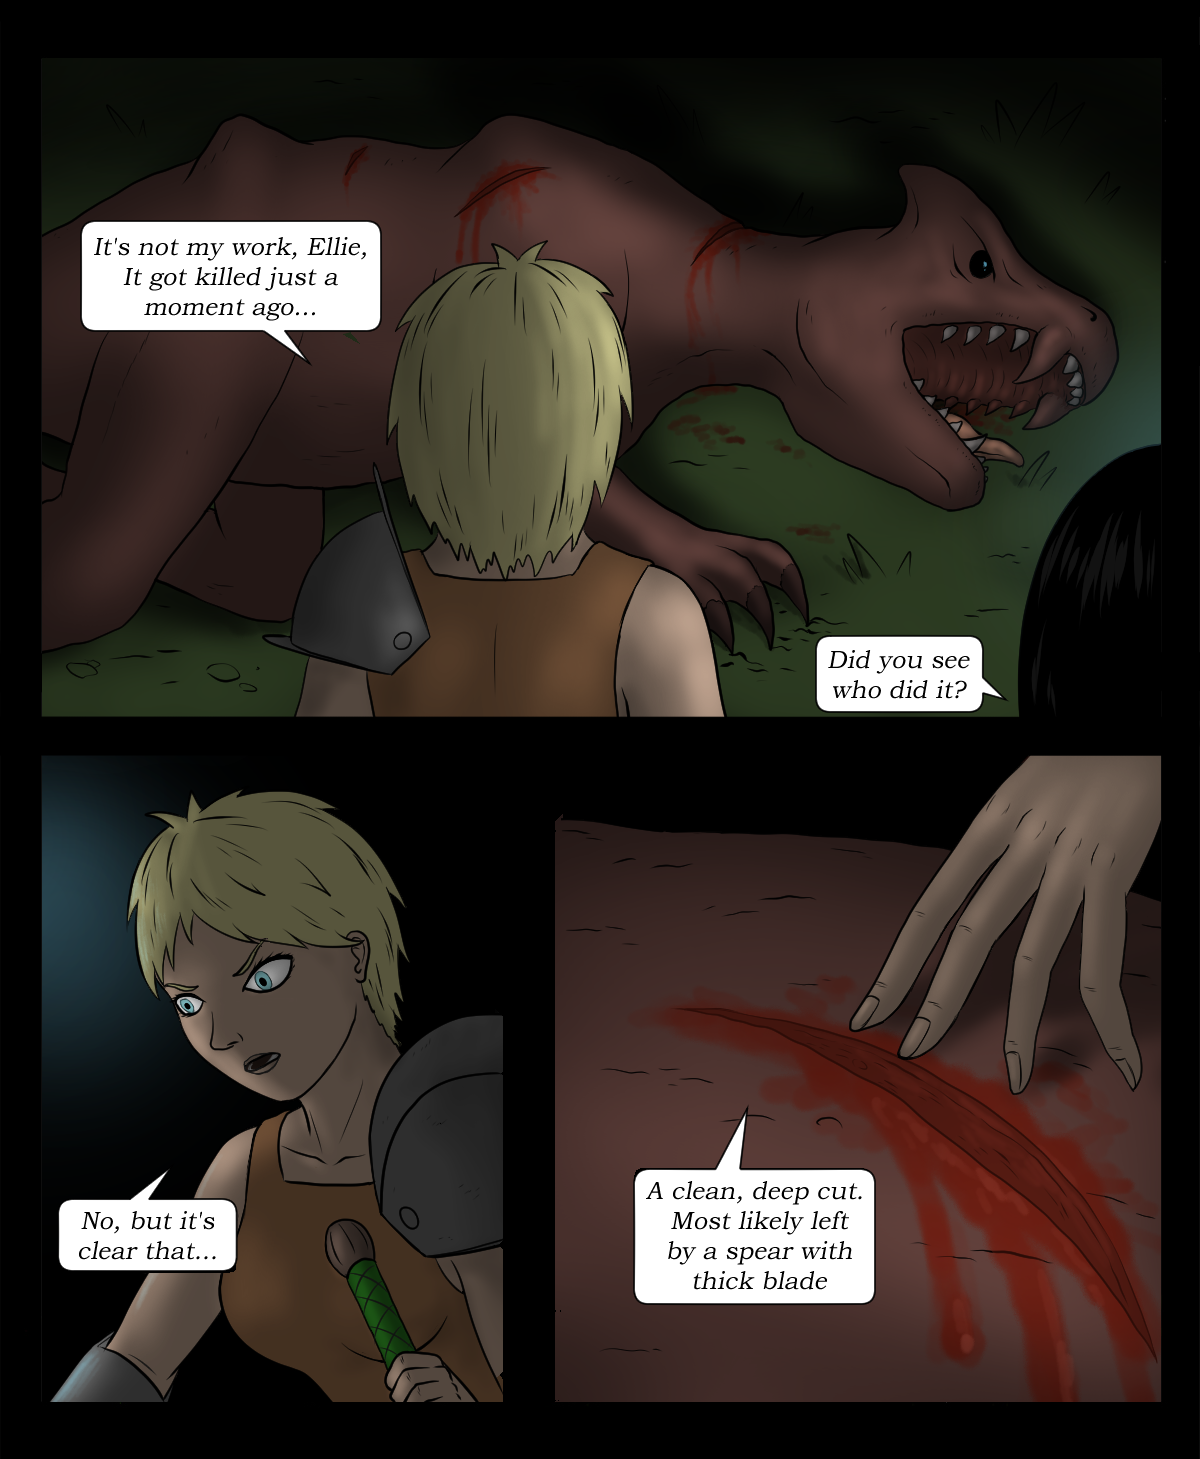 Page 55 - Unwanted presence